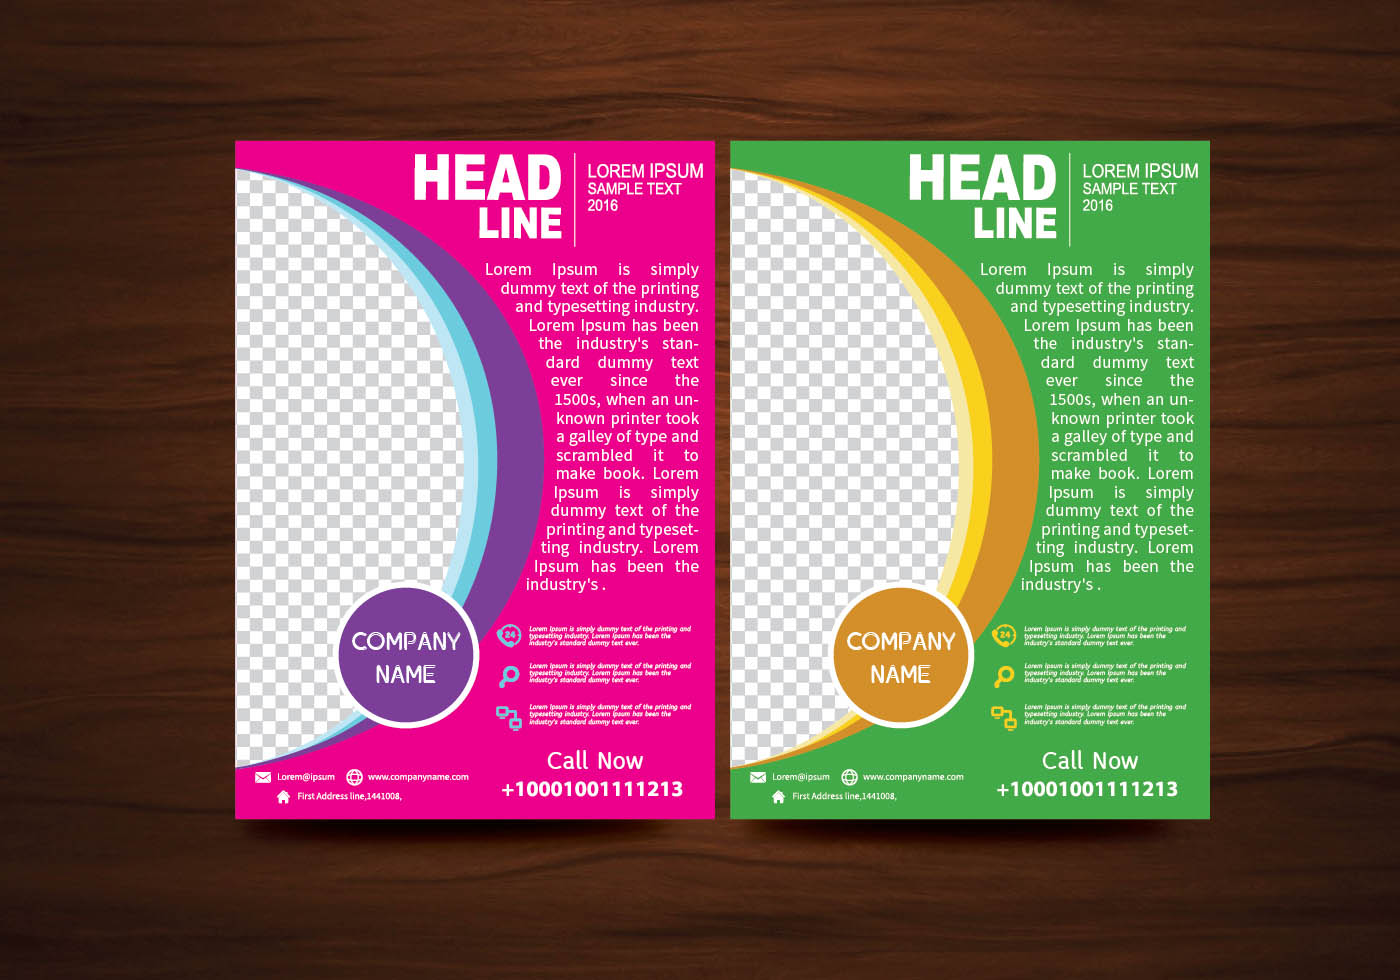 tri fold brochure vector template vector art vector brochure flyer design layout template in a4 size